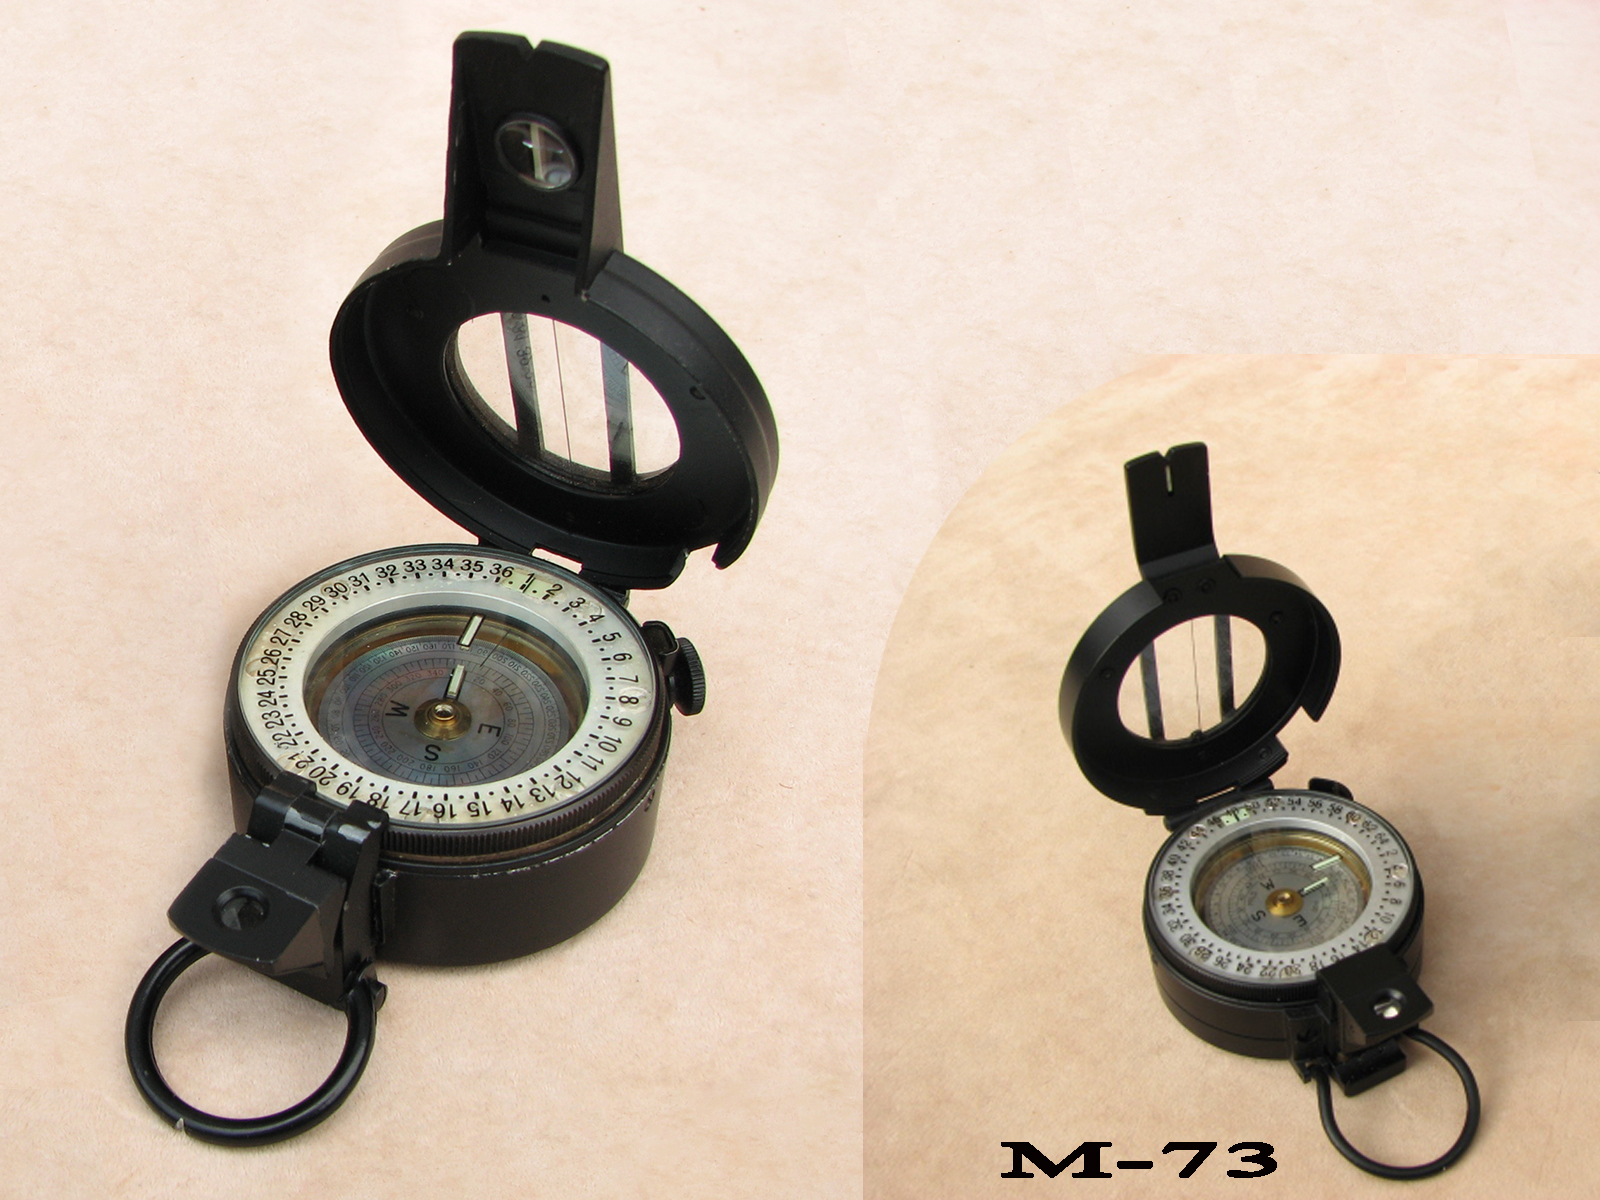 M73 specification prismatic compass by Enbeeco